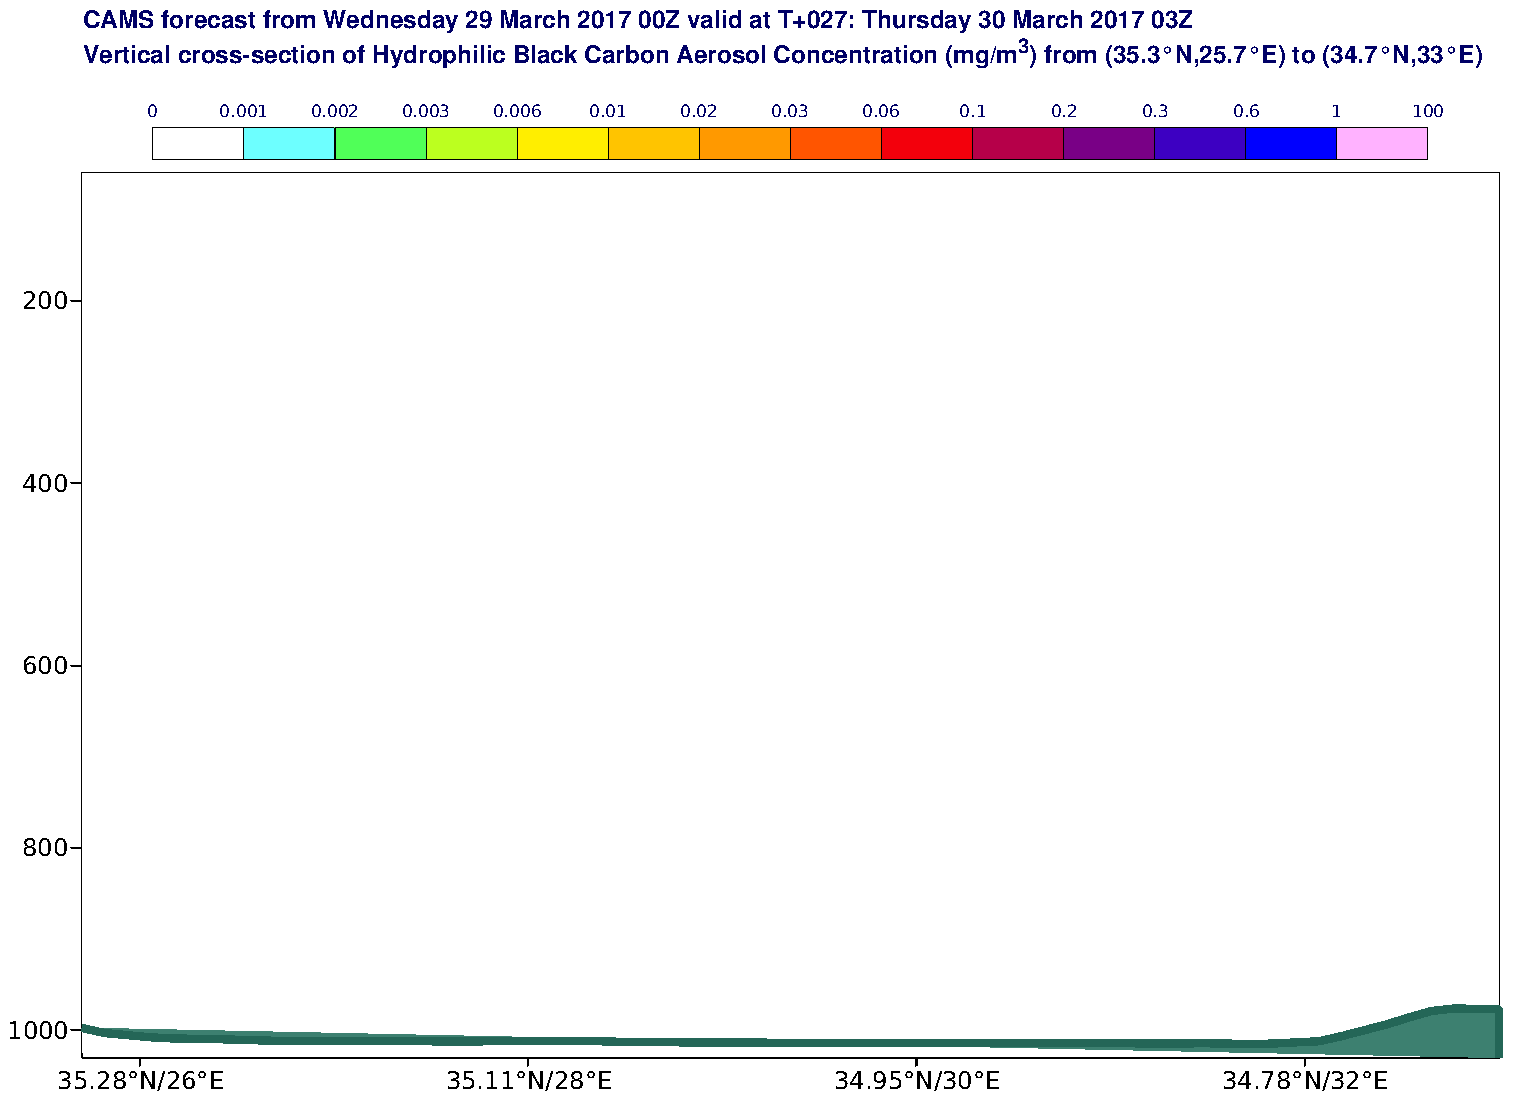 Vertical cross-section of Hydrophilic Black Carbon Aerosol Concentration (mg/m3) valid at T27 - 2017-03-30 03:00